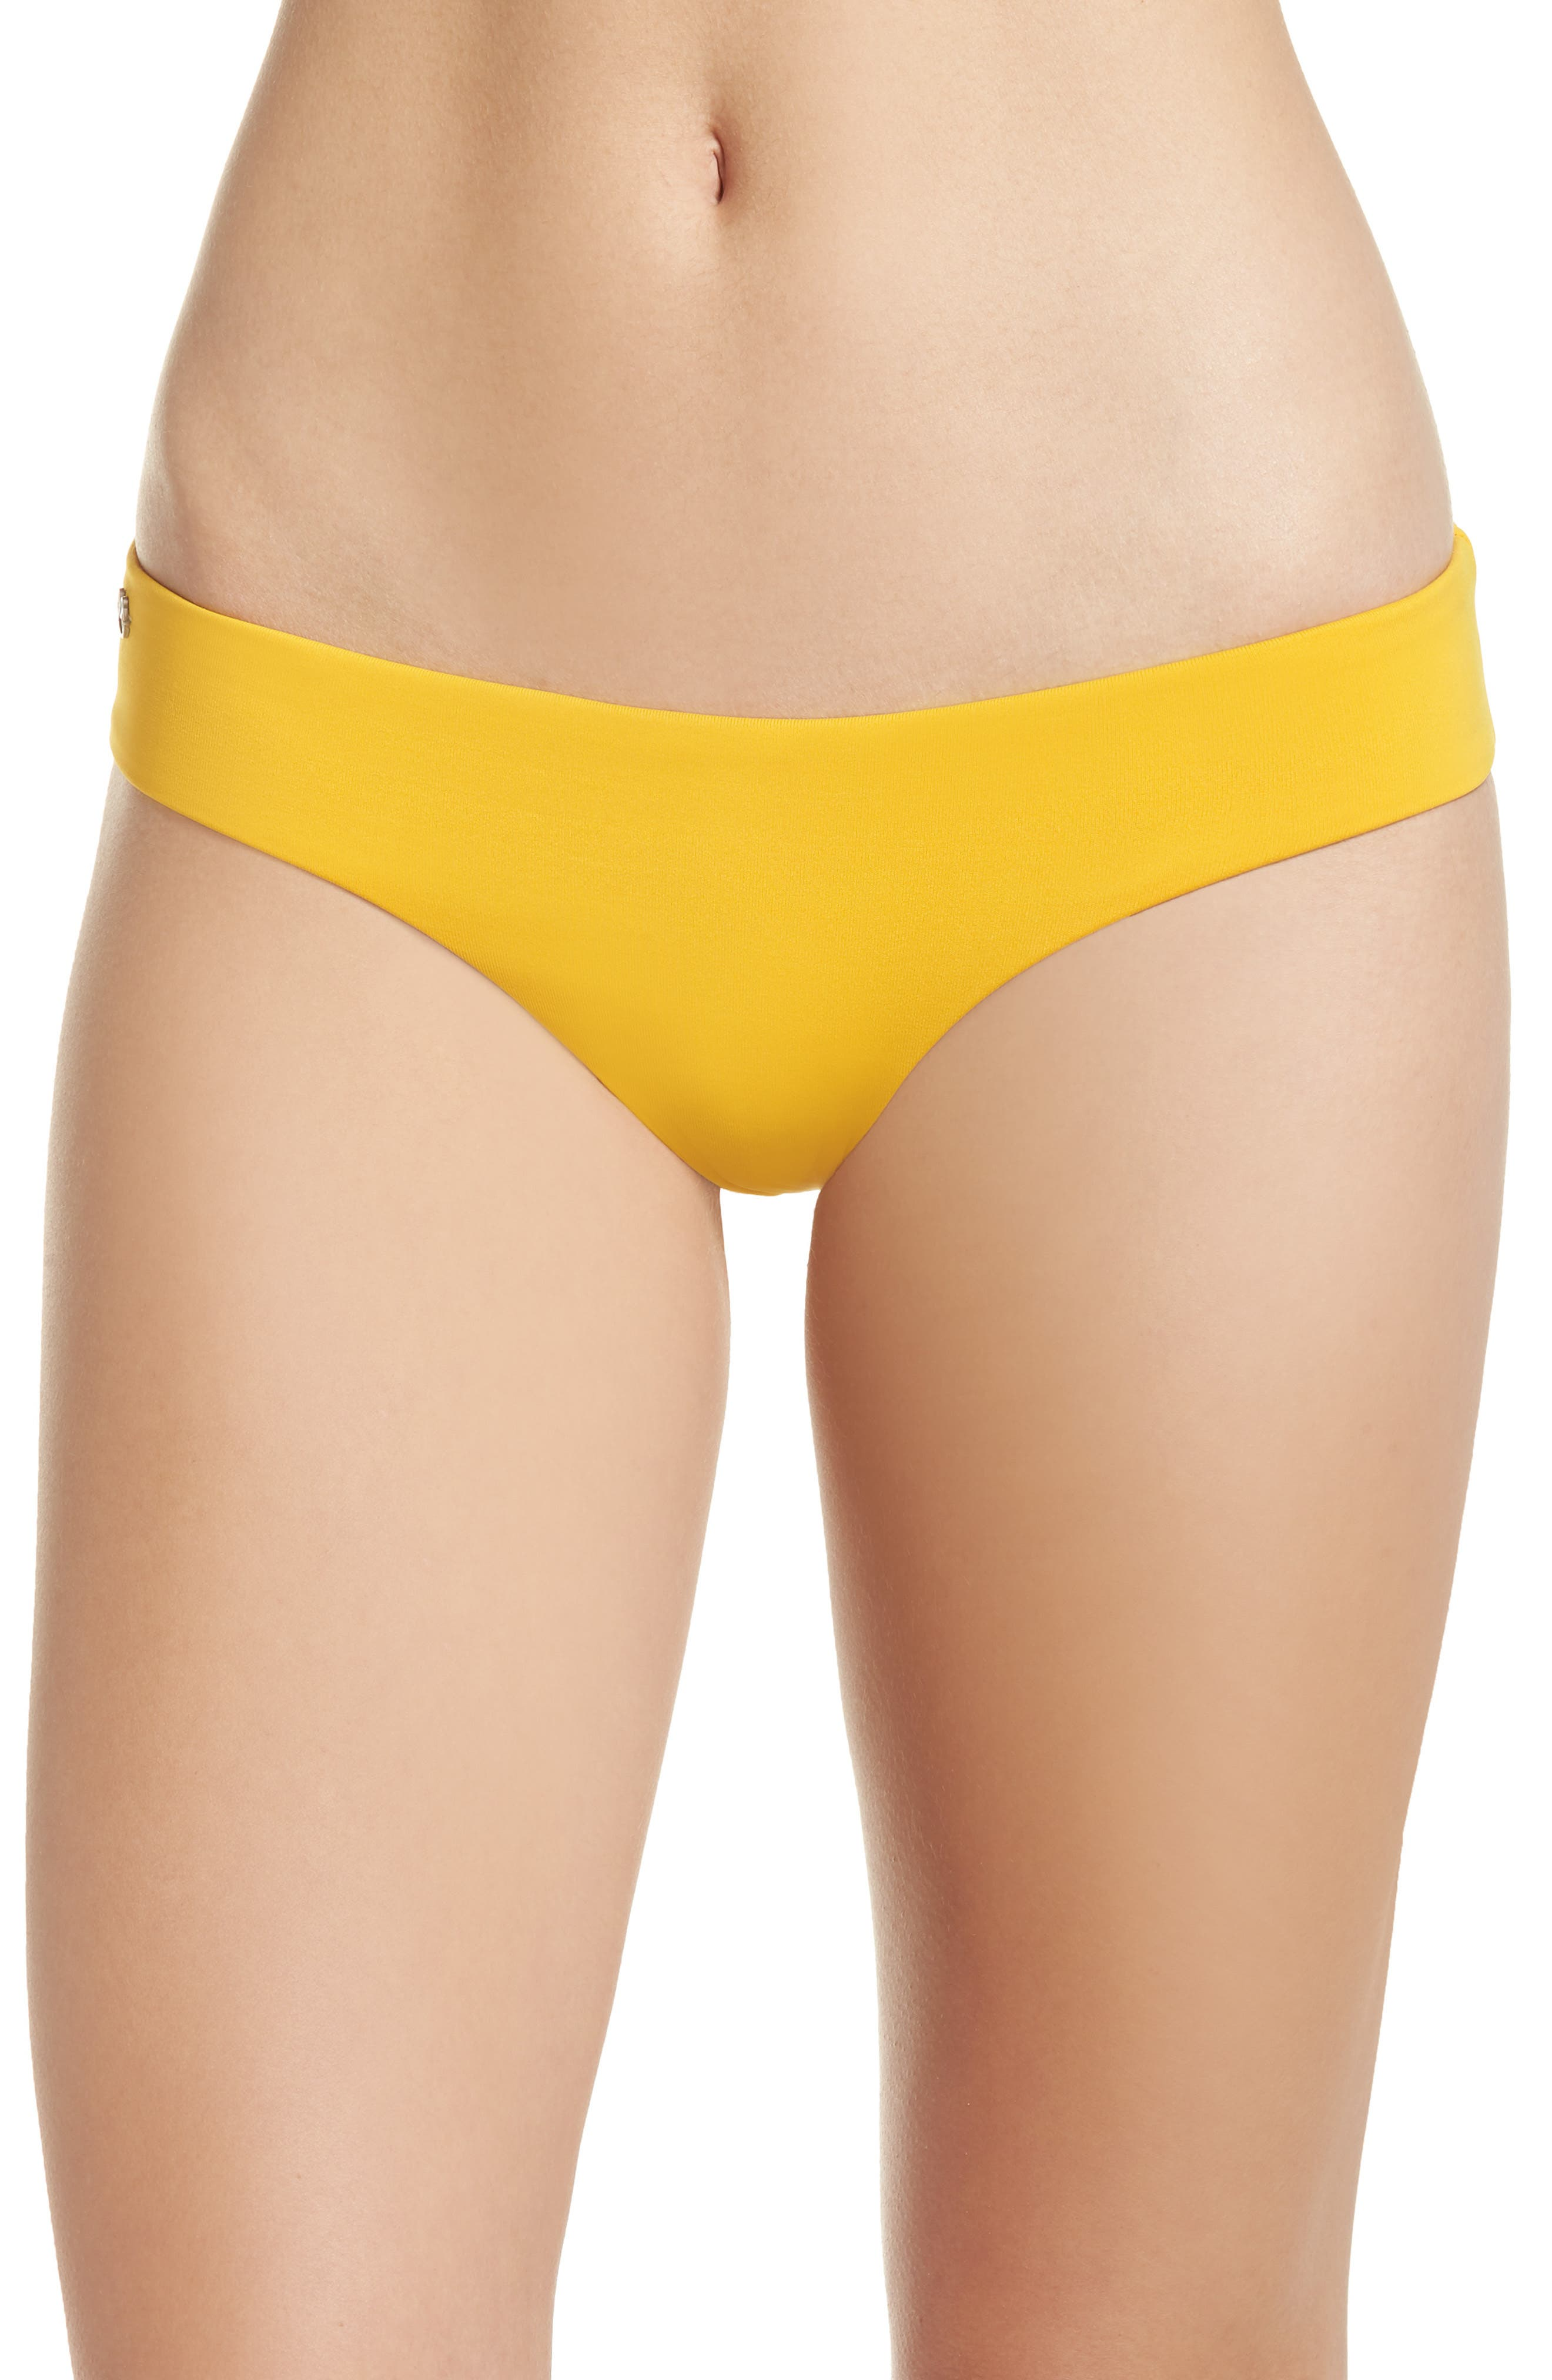 Mellow Yellow Sublime Leaf Reversible Bikini Bottoms,                         Main,                         color, YELLOW